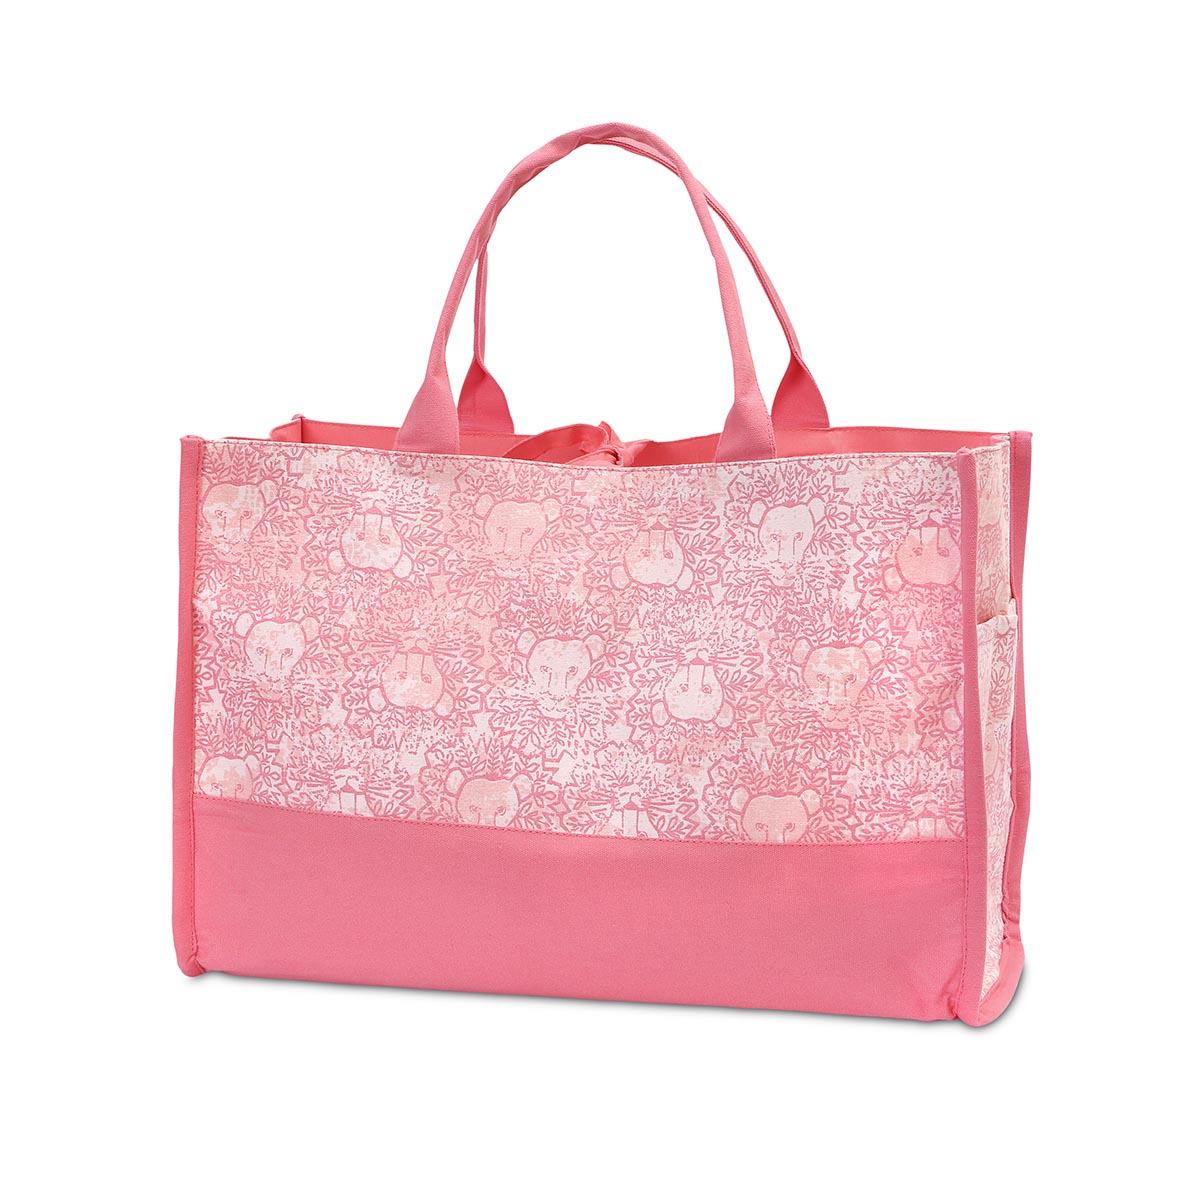 lion around pink open tote